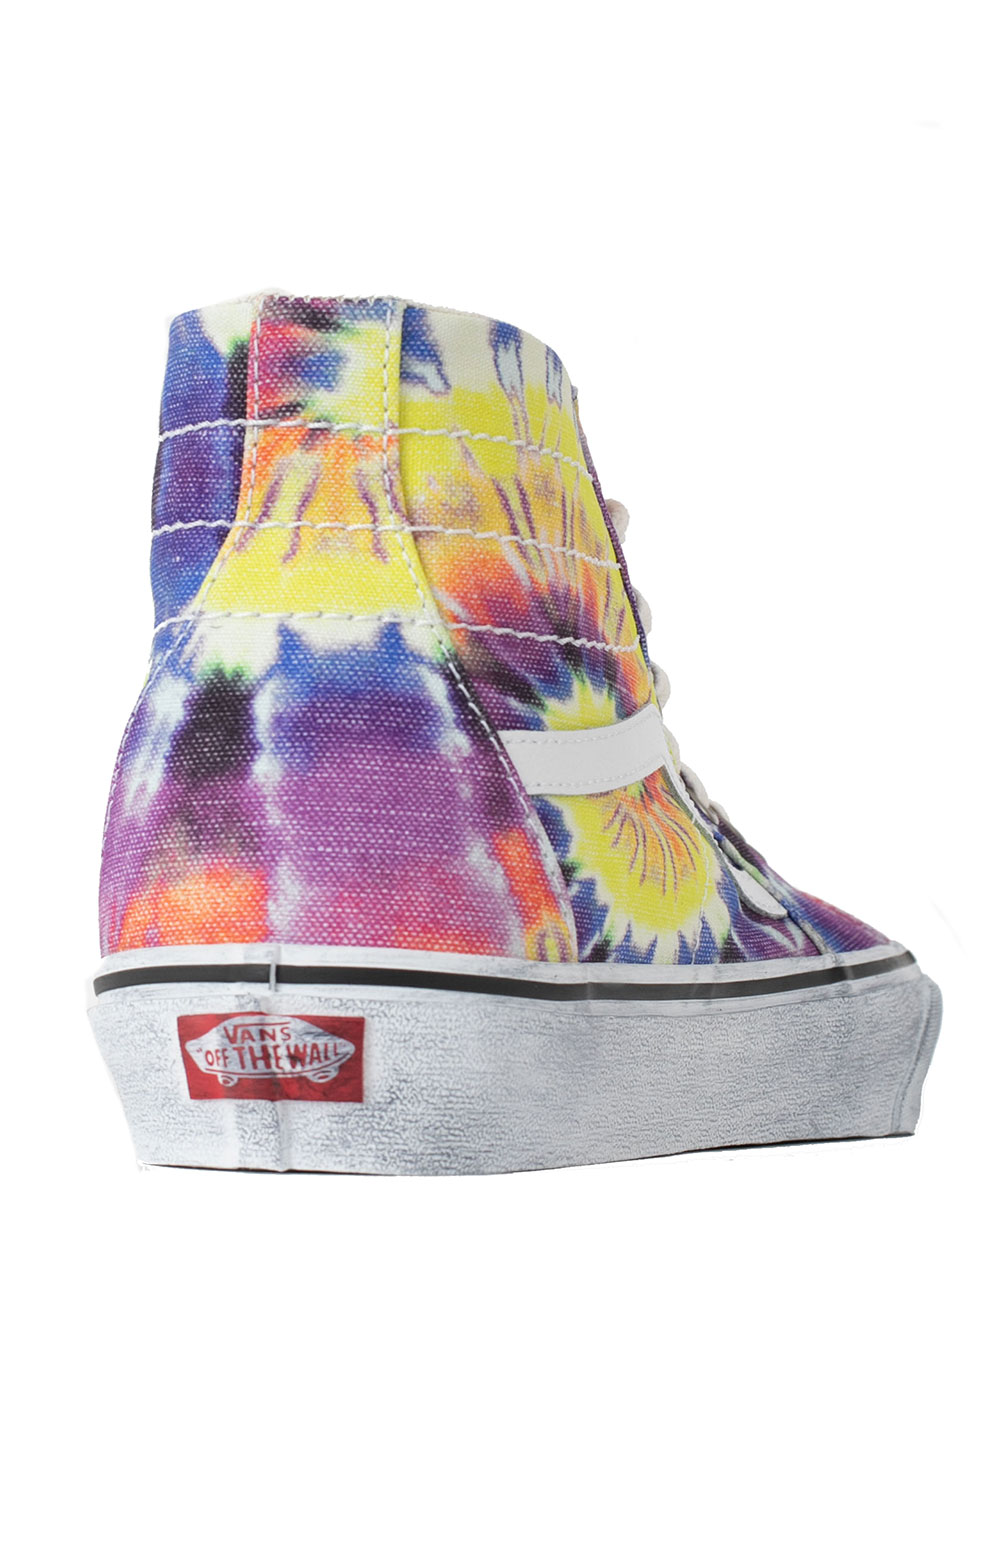 (U1619X) Washed Sk8-Hi Tapered Shoes - Tie-Dye/True White  6